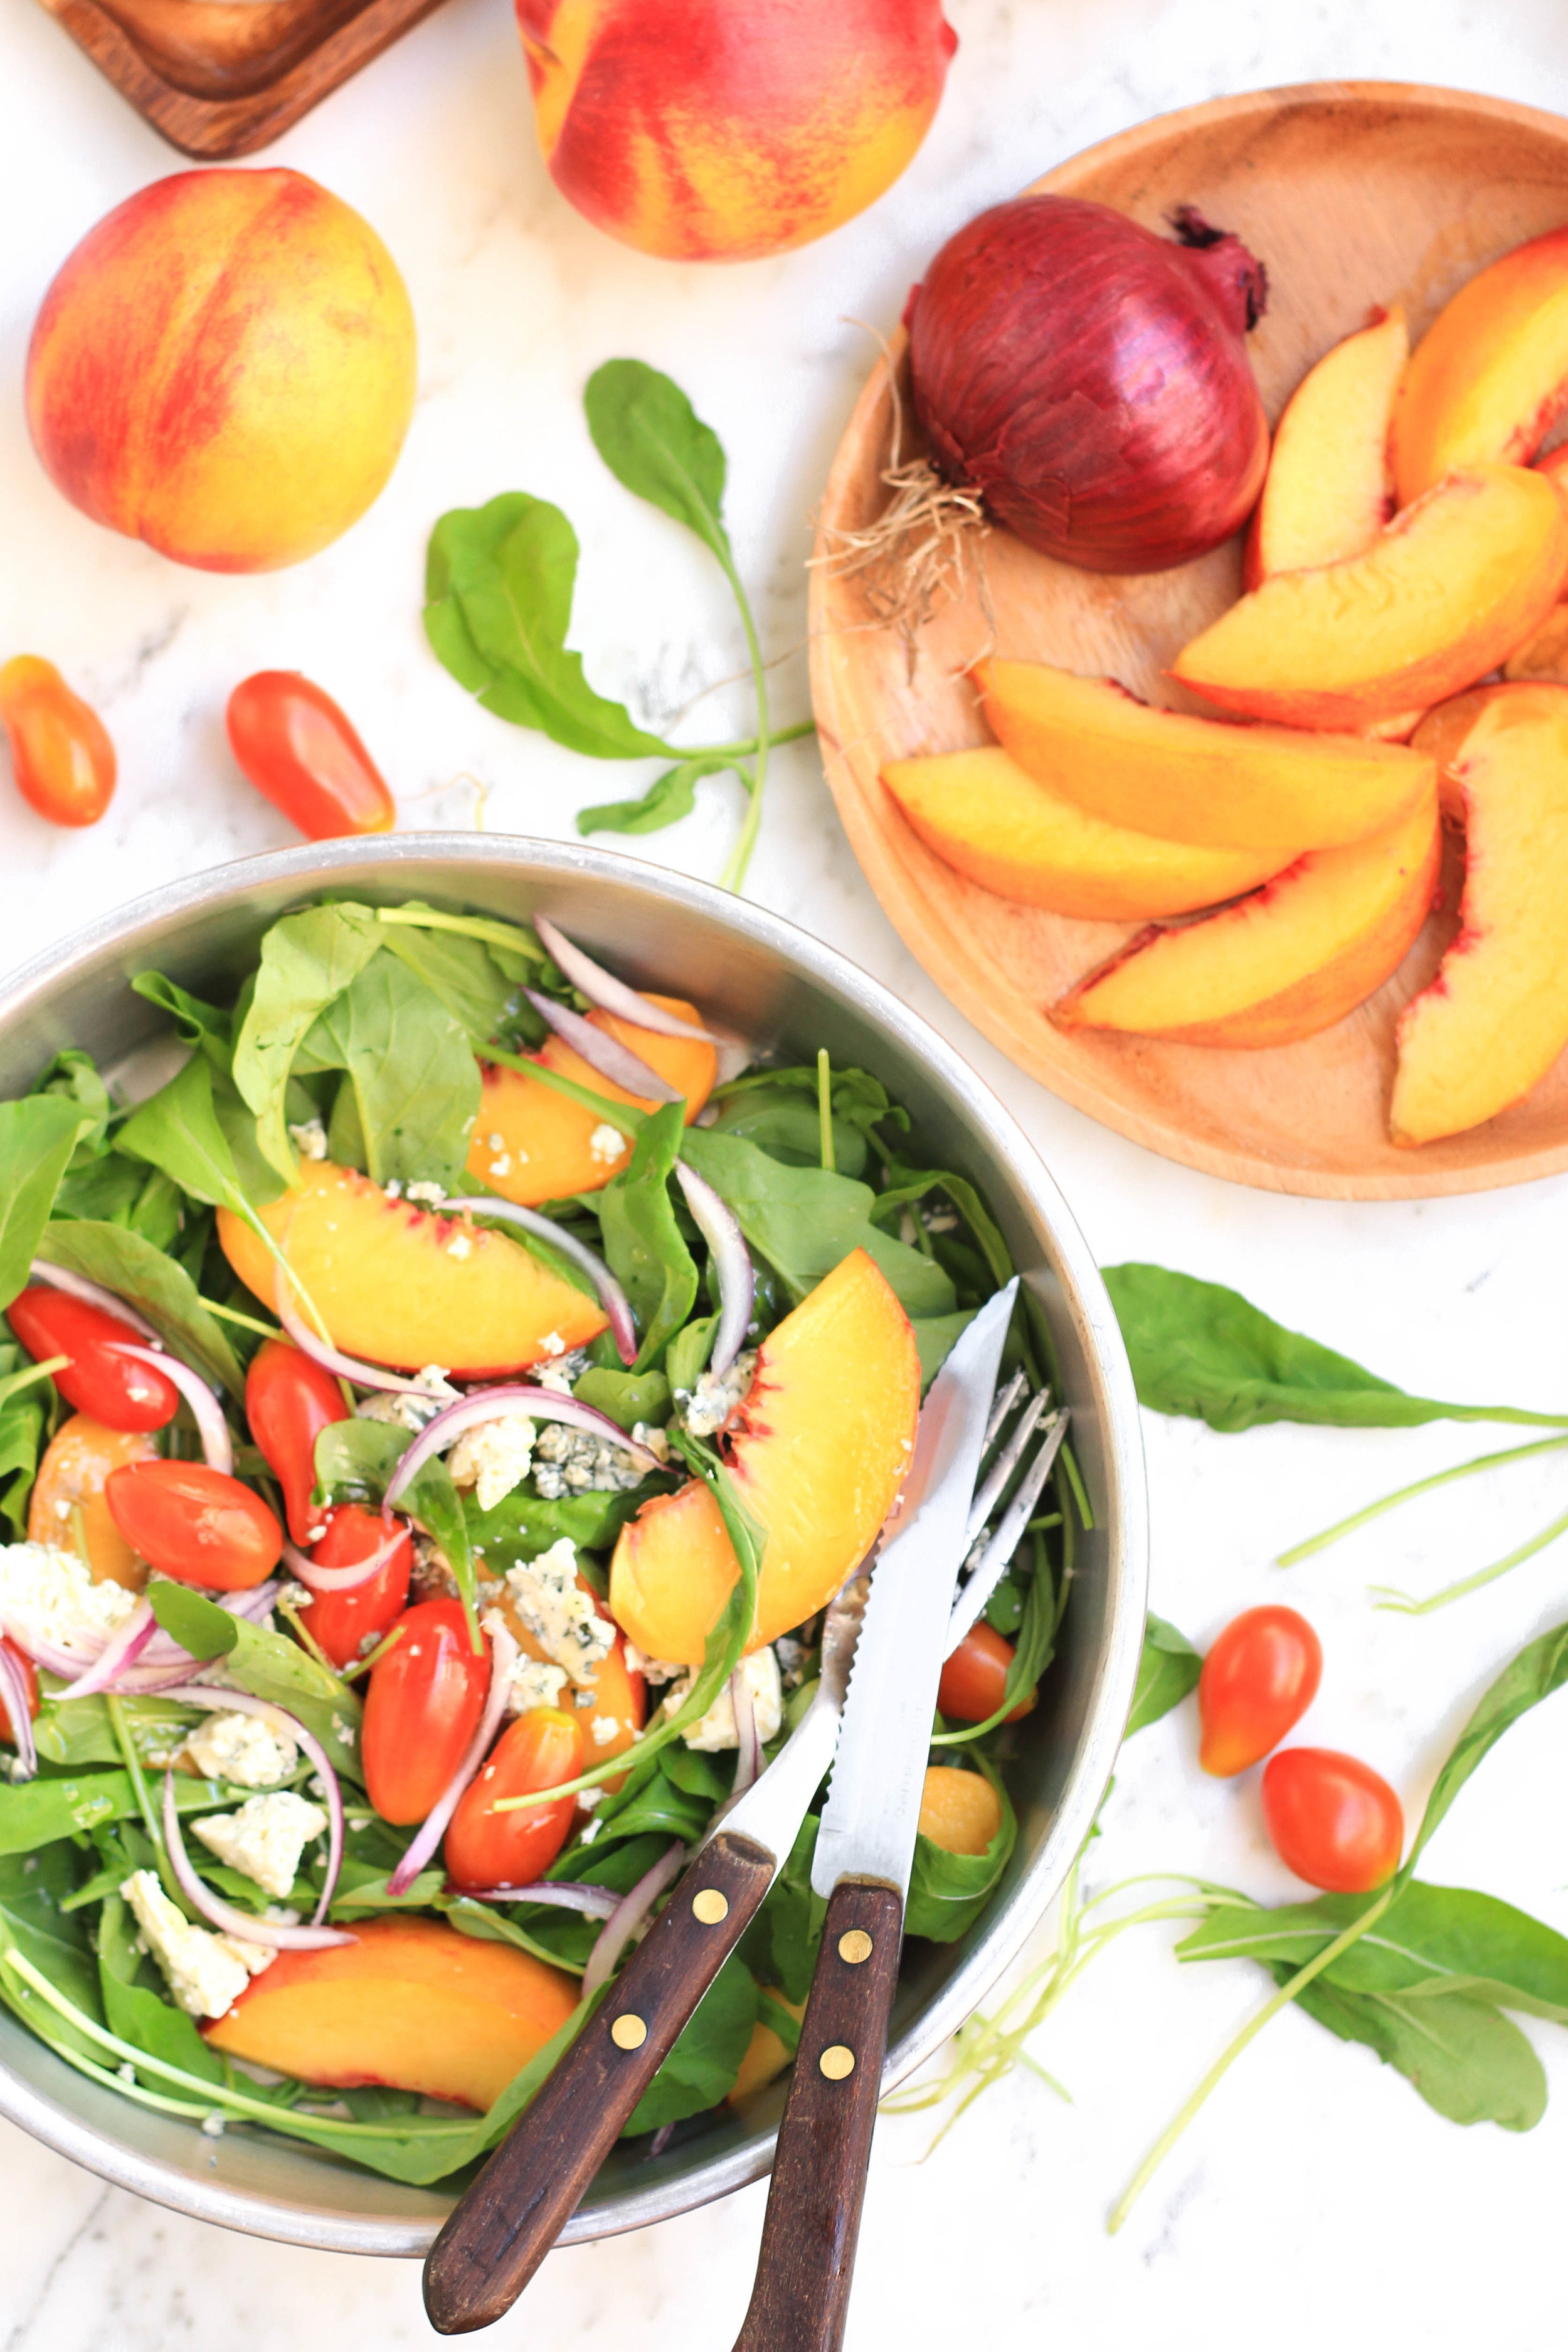 Peach, Arugula & Tomato Salad with Honey Olive Oil Dressing8.jpg